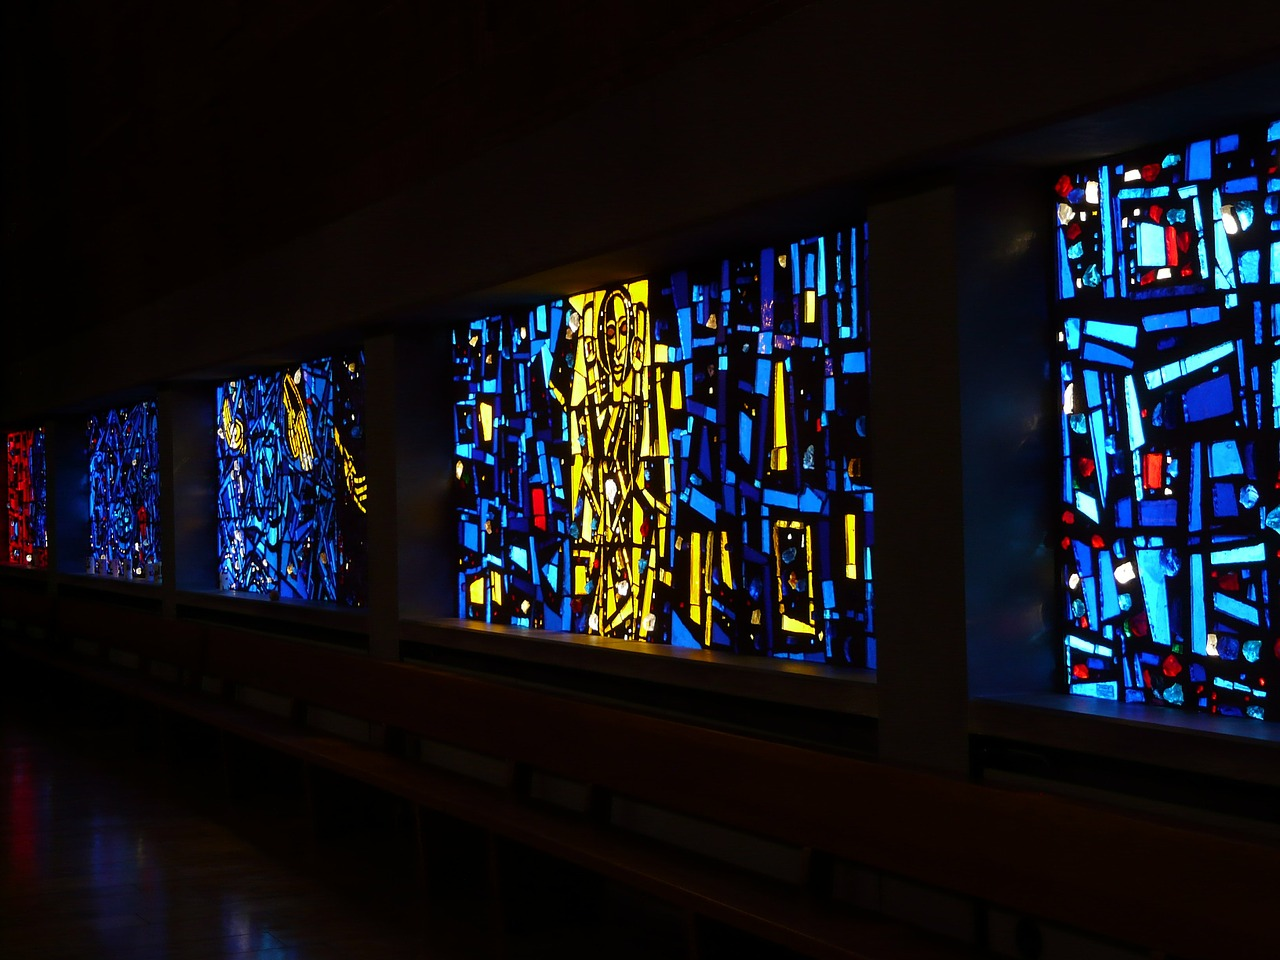 church window,glass,window,colorful glass,colorful,church,faith,christianity,christian,religion,god,jesus,free pictures, free photos, free images, royalty free, free illustrations, public domain